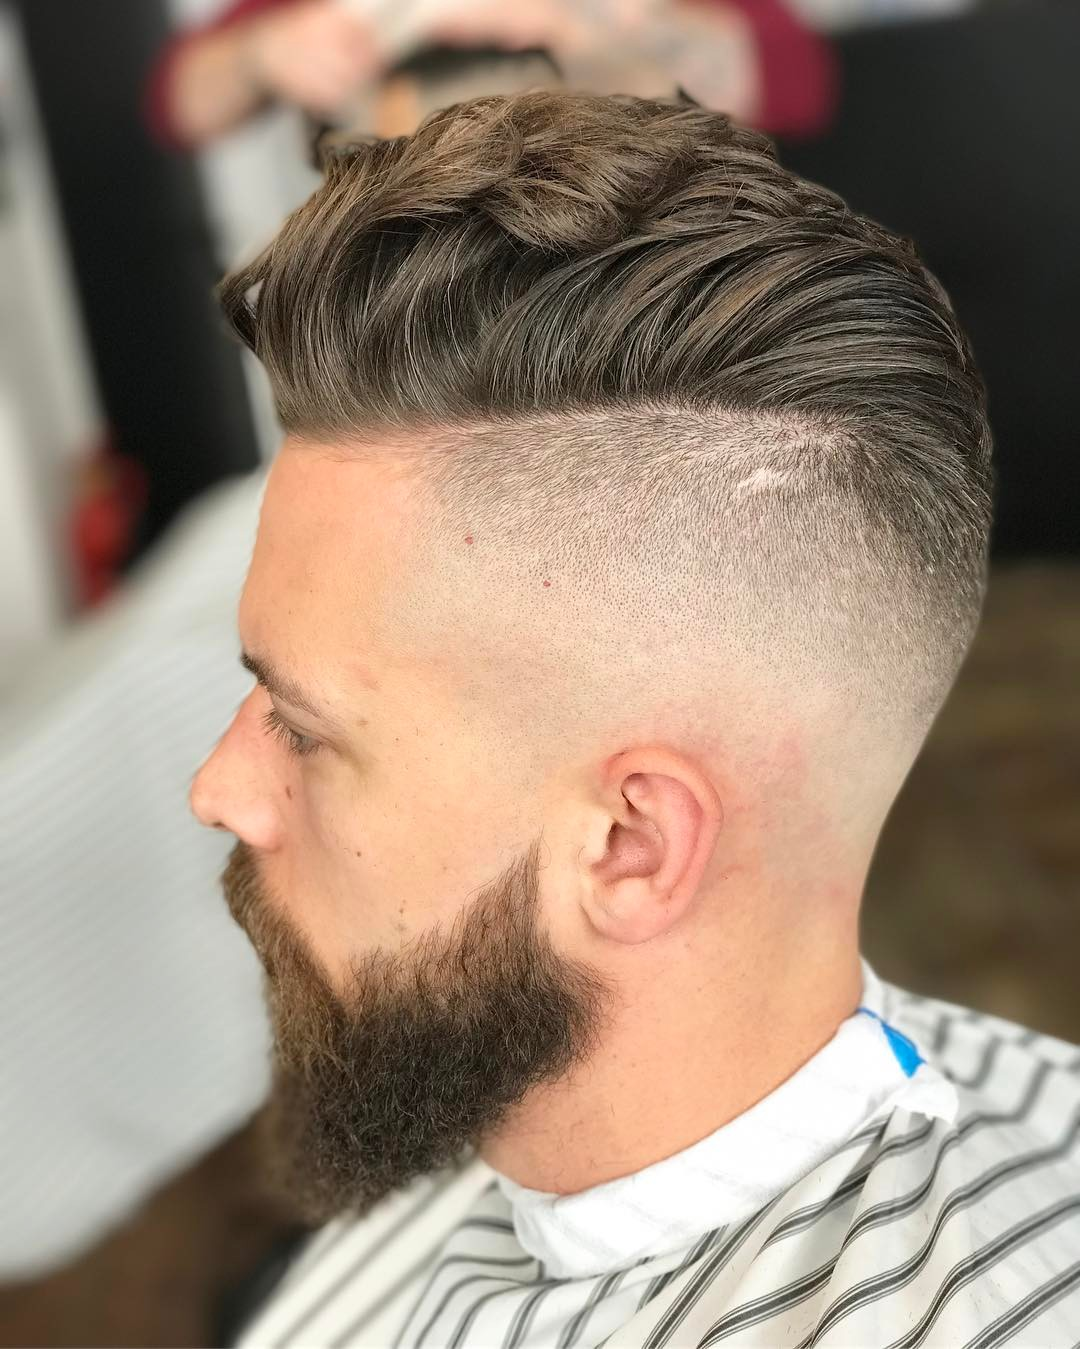 Undercut Pompadour Hairstyle For Men